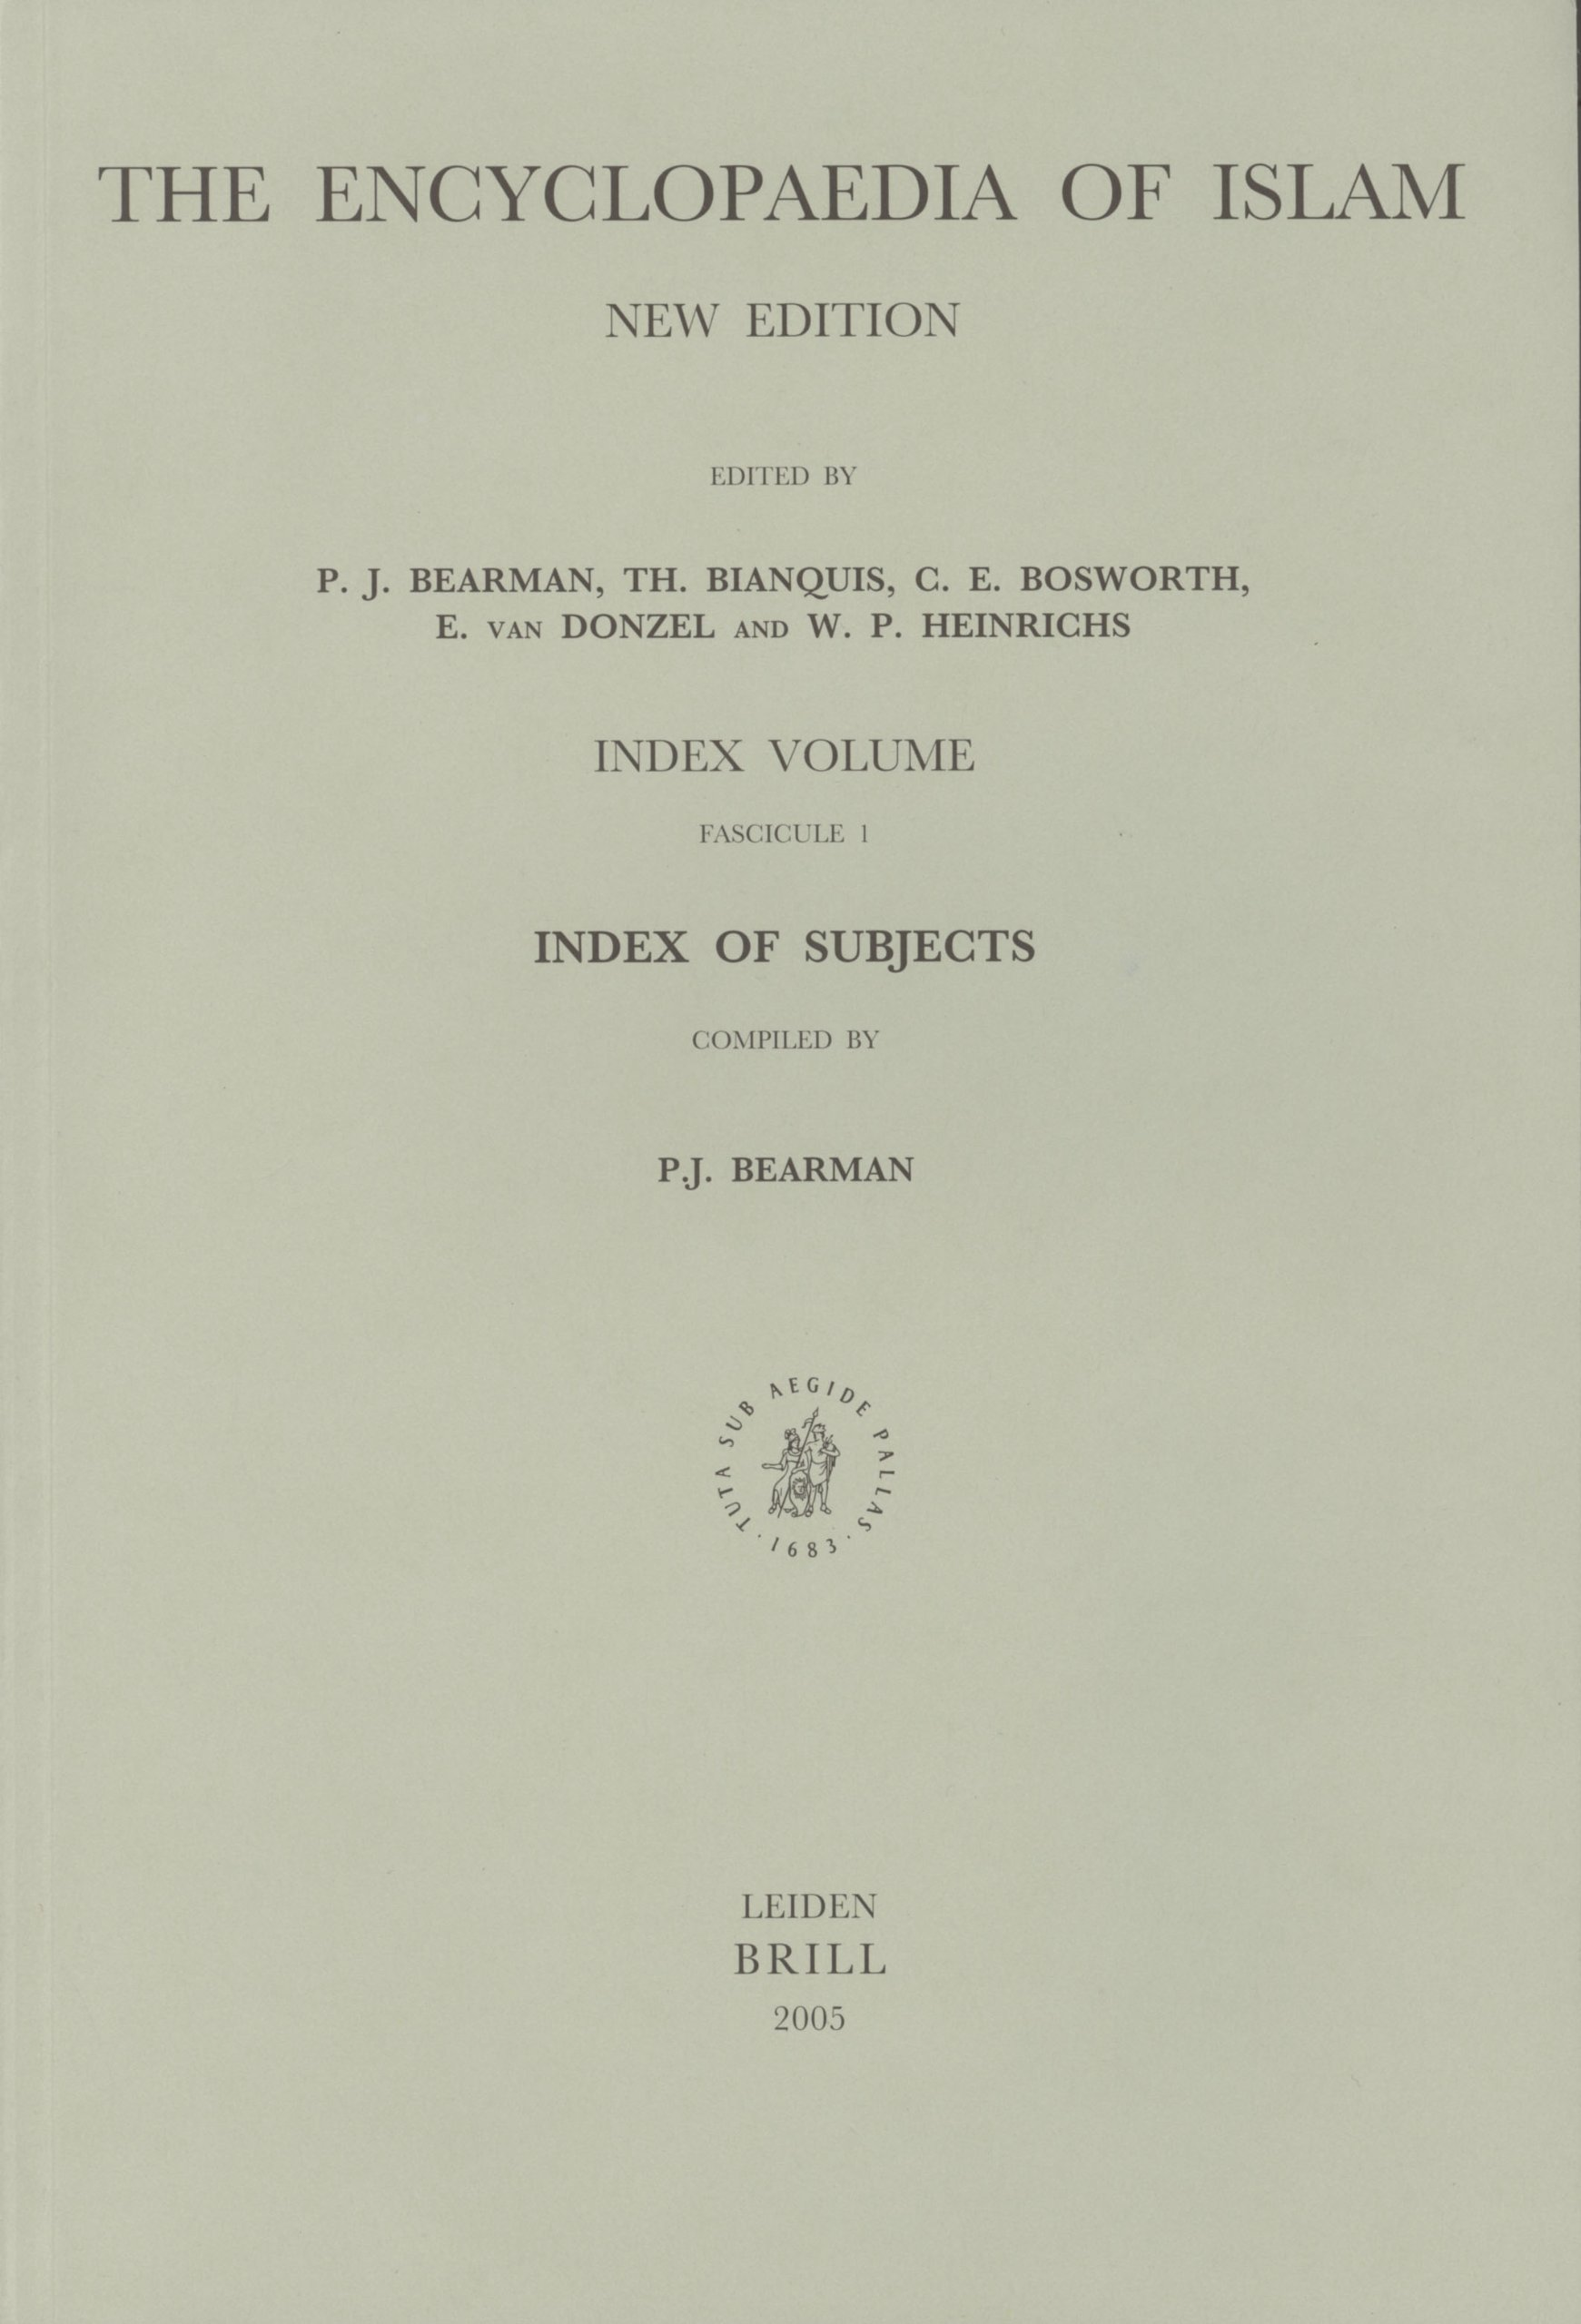 The Encyclopaedia Of Islam, New Edition: Index Volume, Index Of Subjects : Fascicule 1 (Encyclopaedia of Islam) (Vol I-XI) ebook